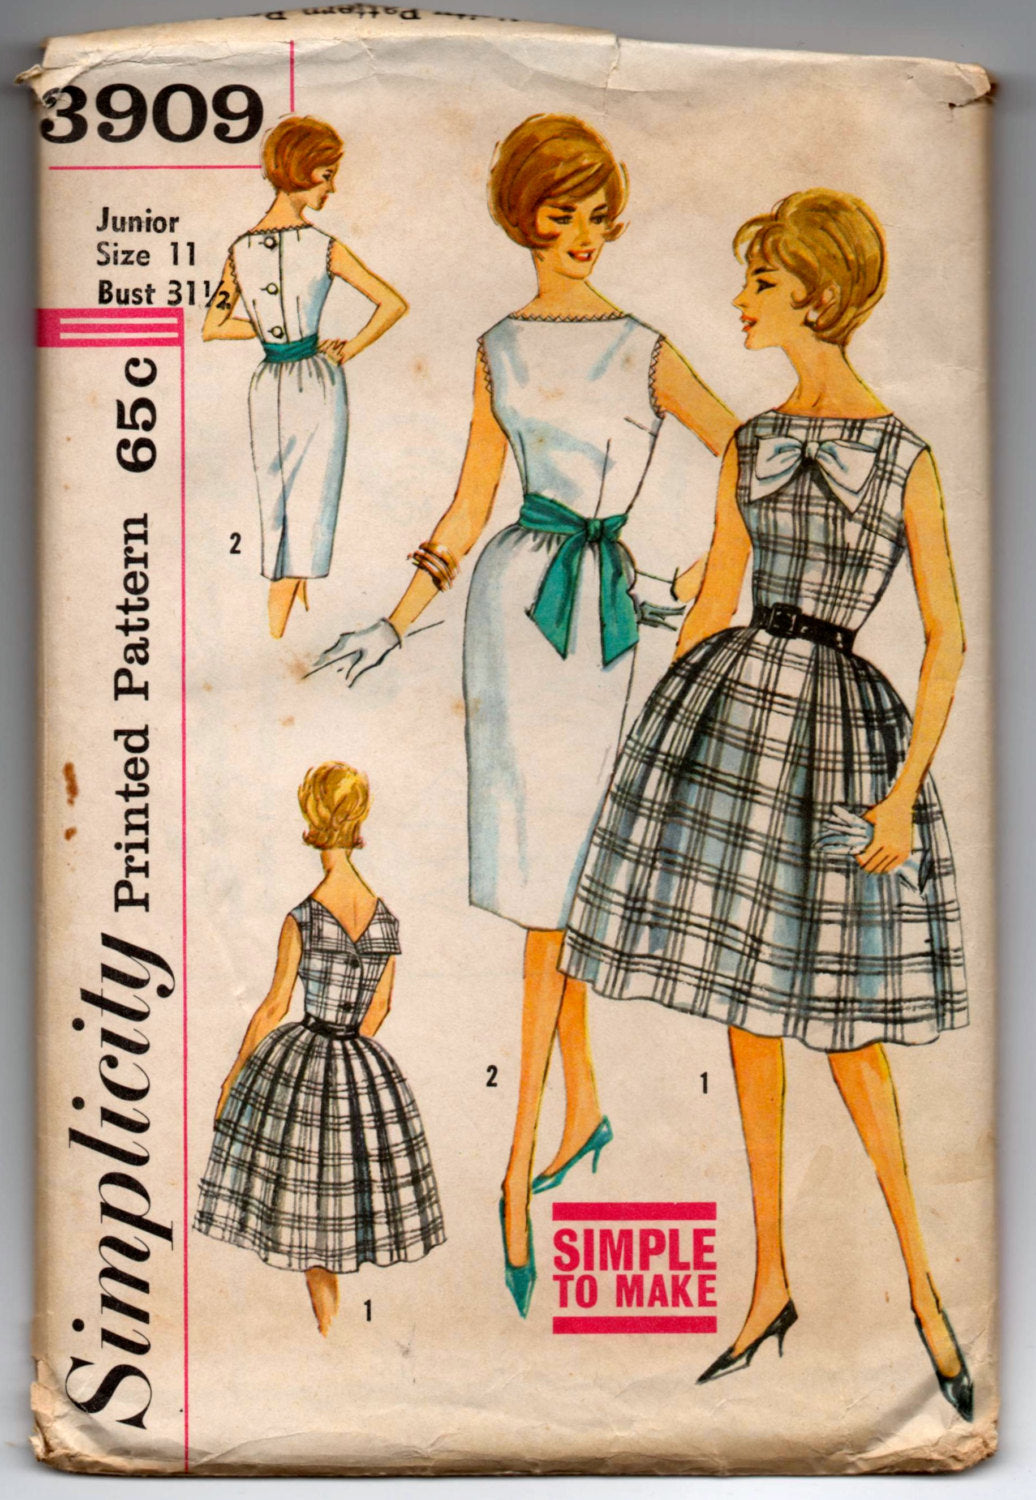 1960's Simplicity One-Piece Dress with Bow detail and button up back pattern - Bust 31.5